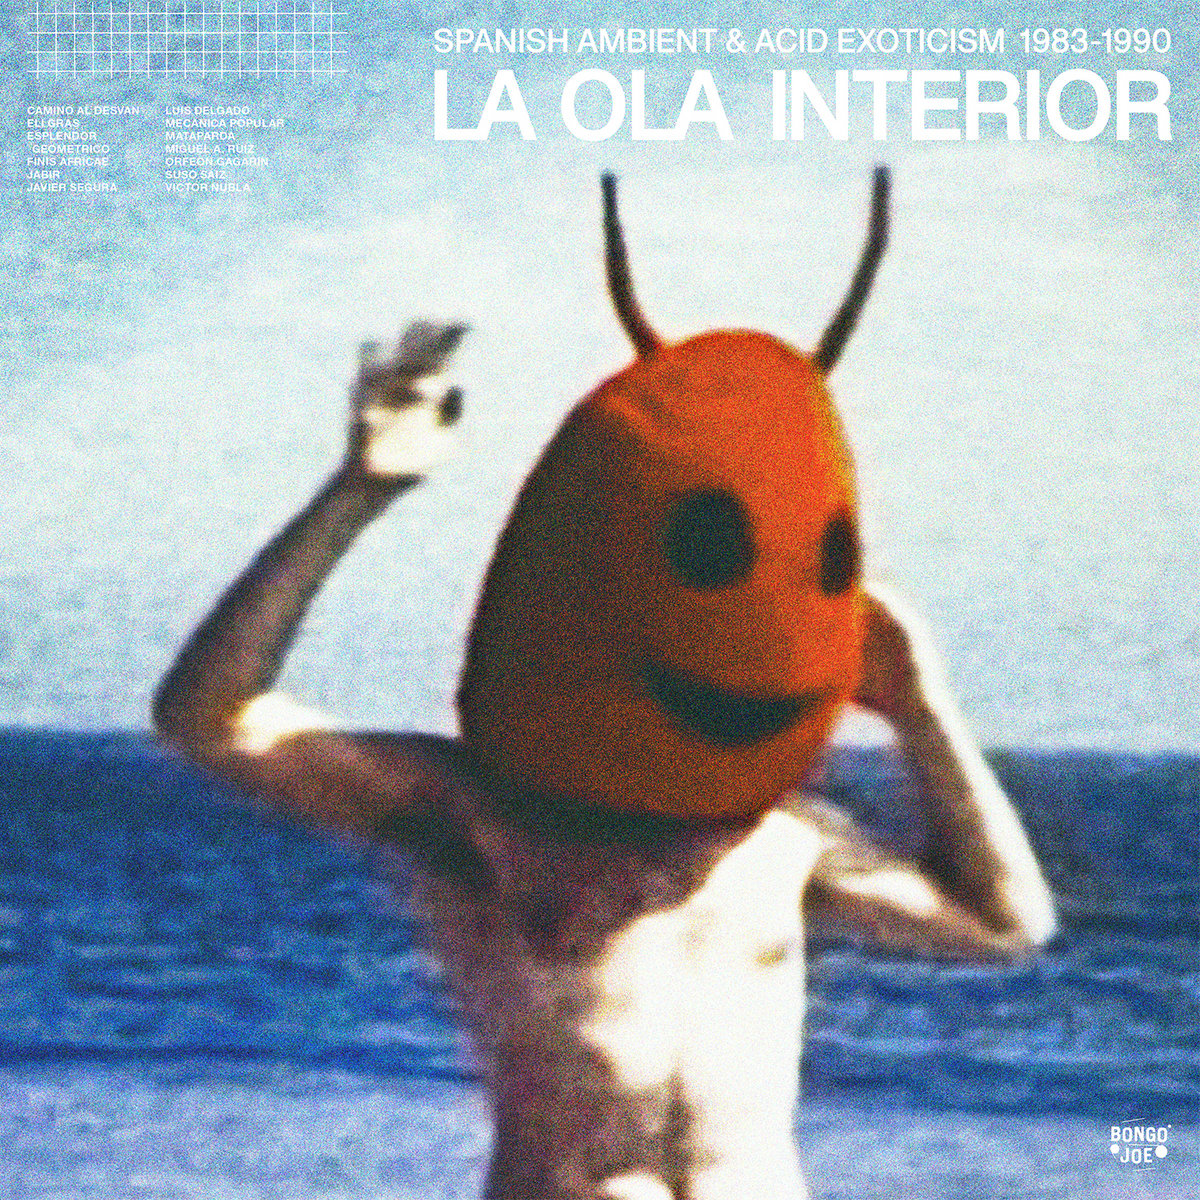 LA OLA INTERIOR - SPANISH AMBIENT & ACID EXOTICISM 1983-1990